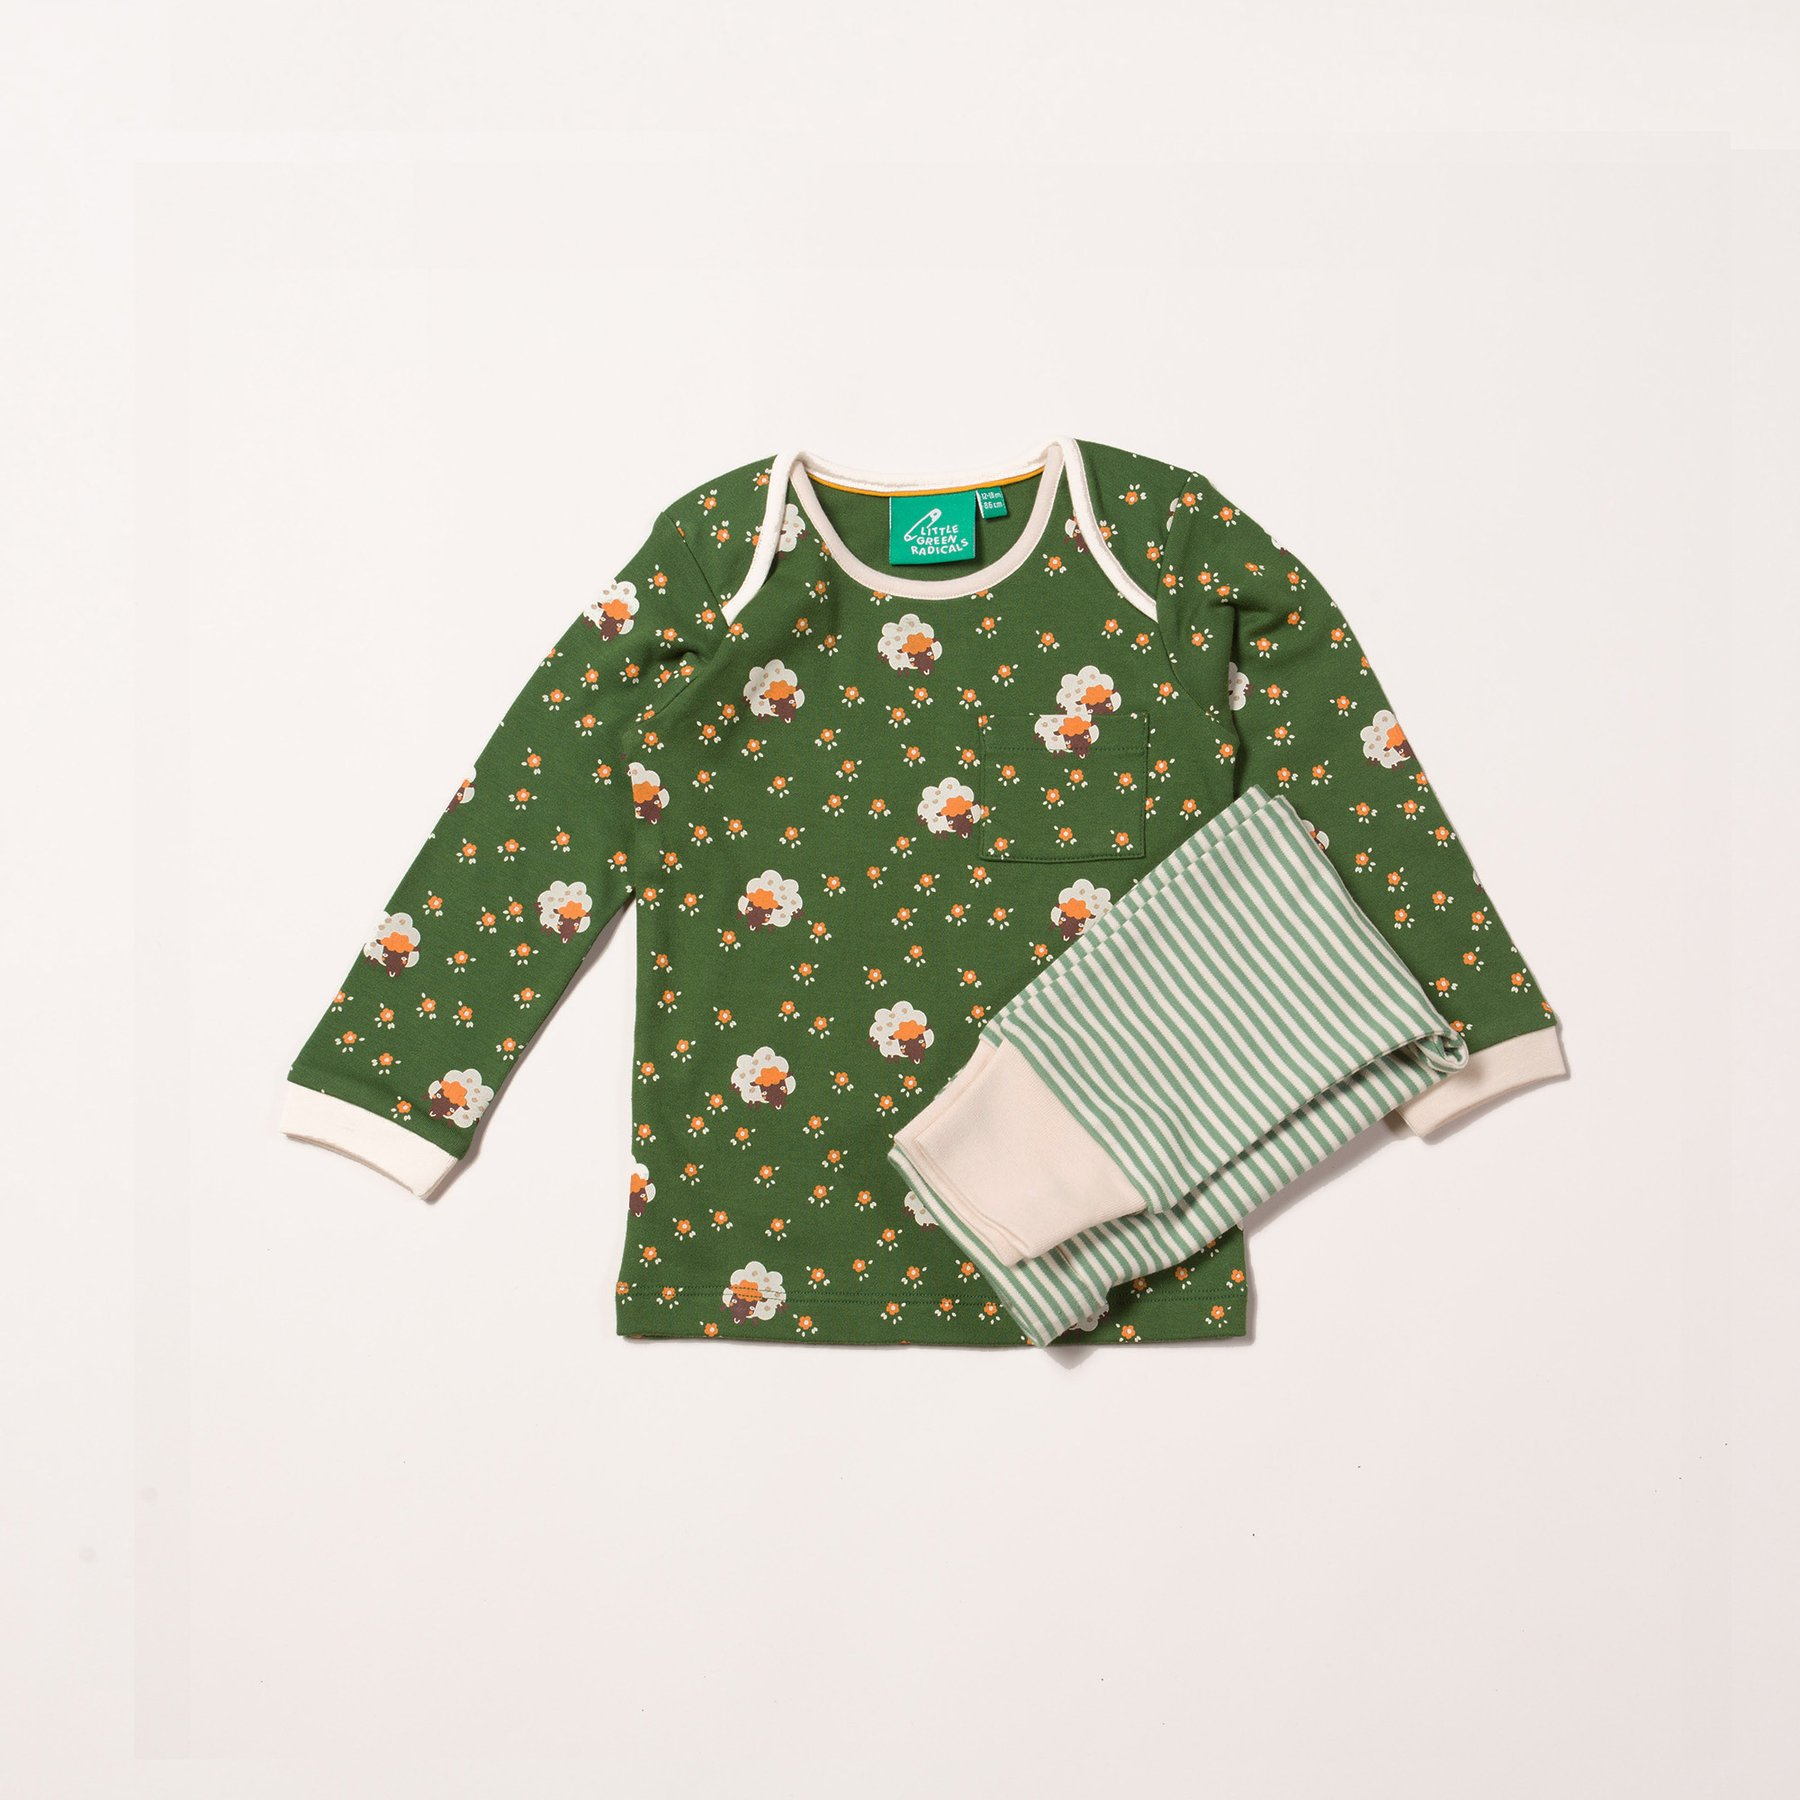 kids long sleeve pj set, green pin stripe leggings and forest green top with repeat golden sheep pattern